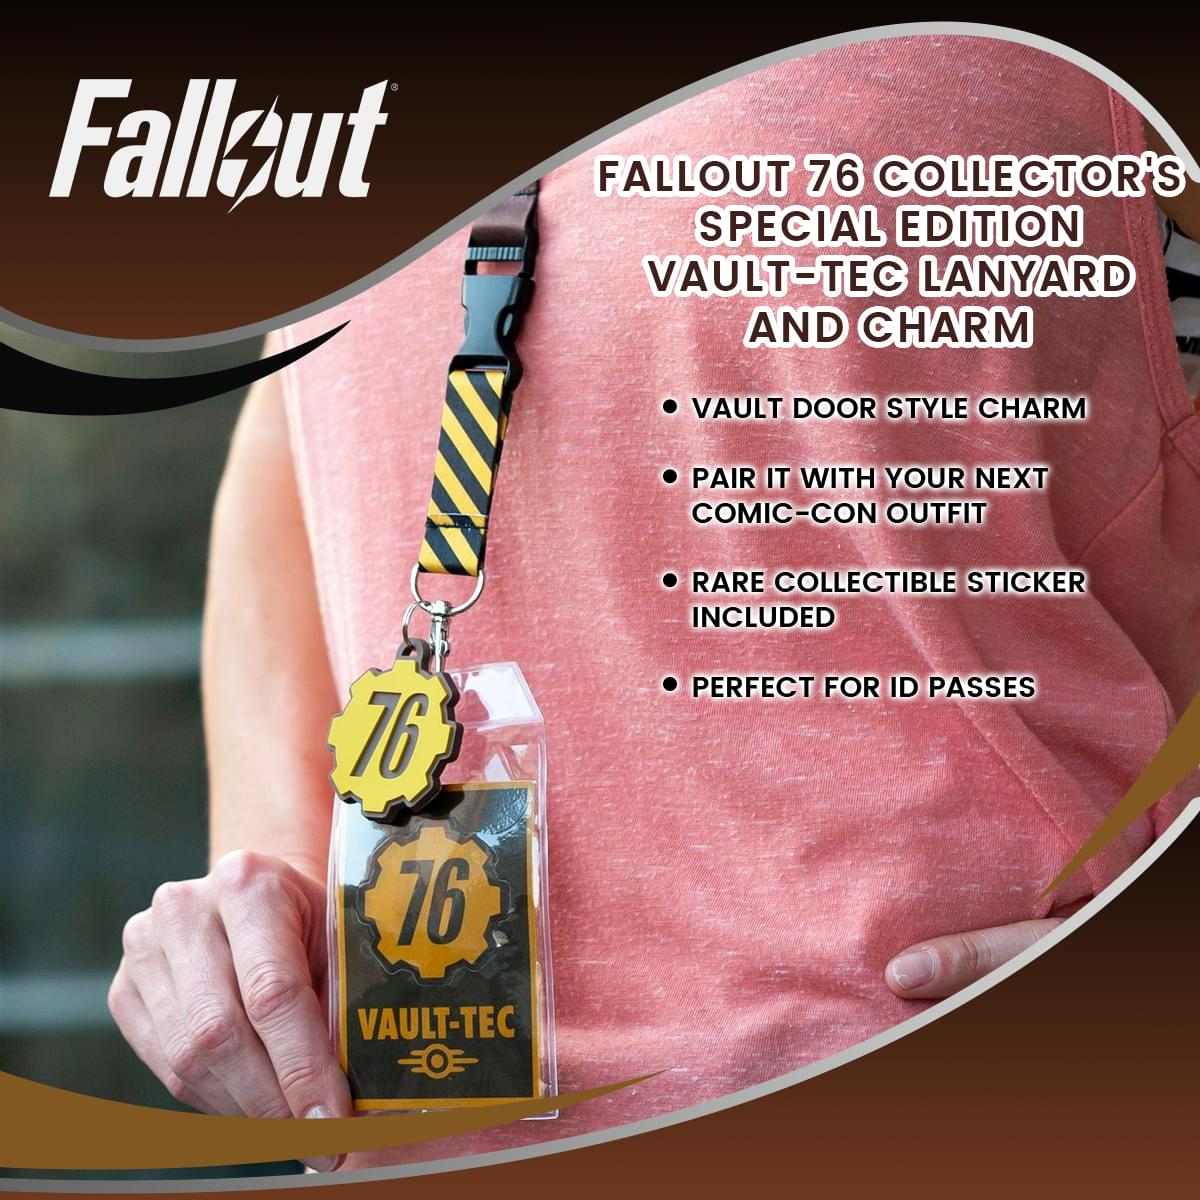 Fallout 76 Collector's Special Edition Vault-Tec Lanyard and Charm